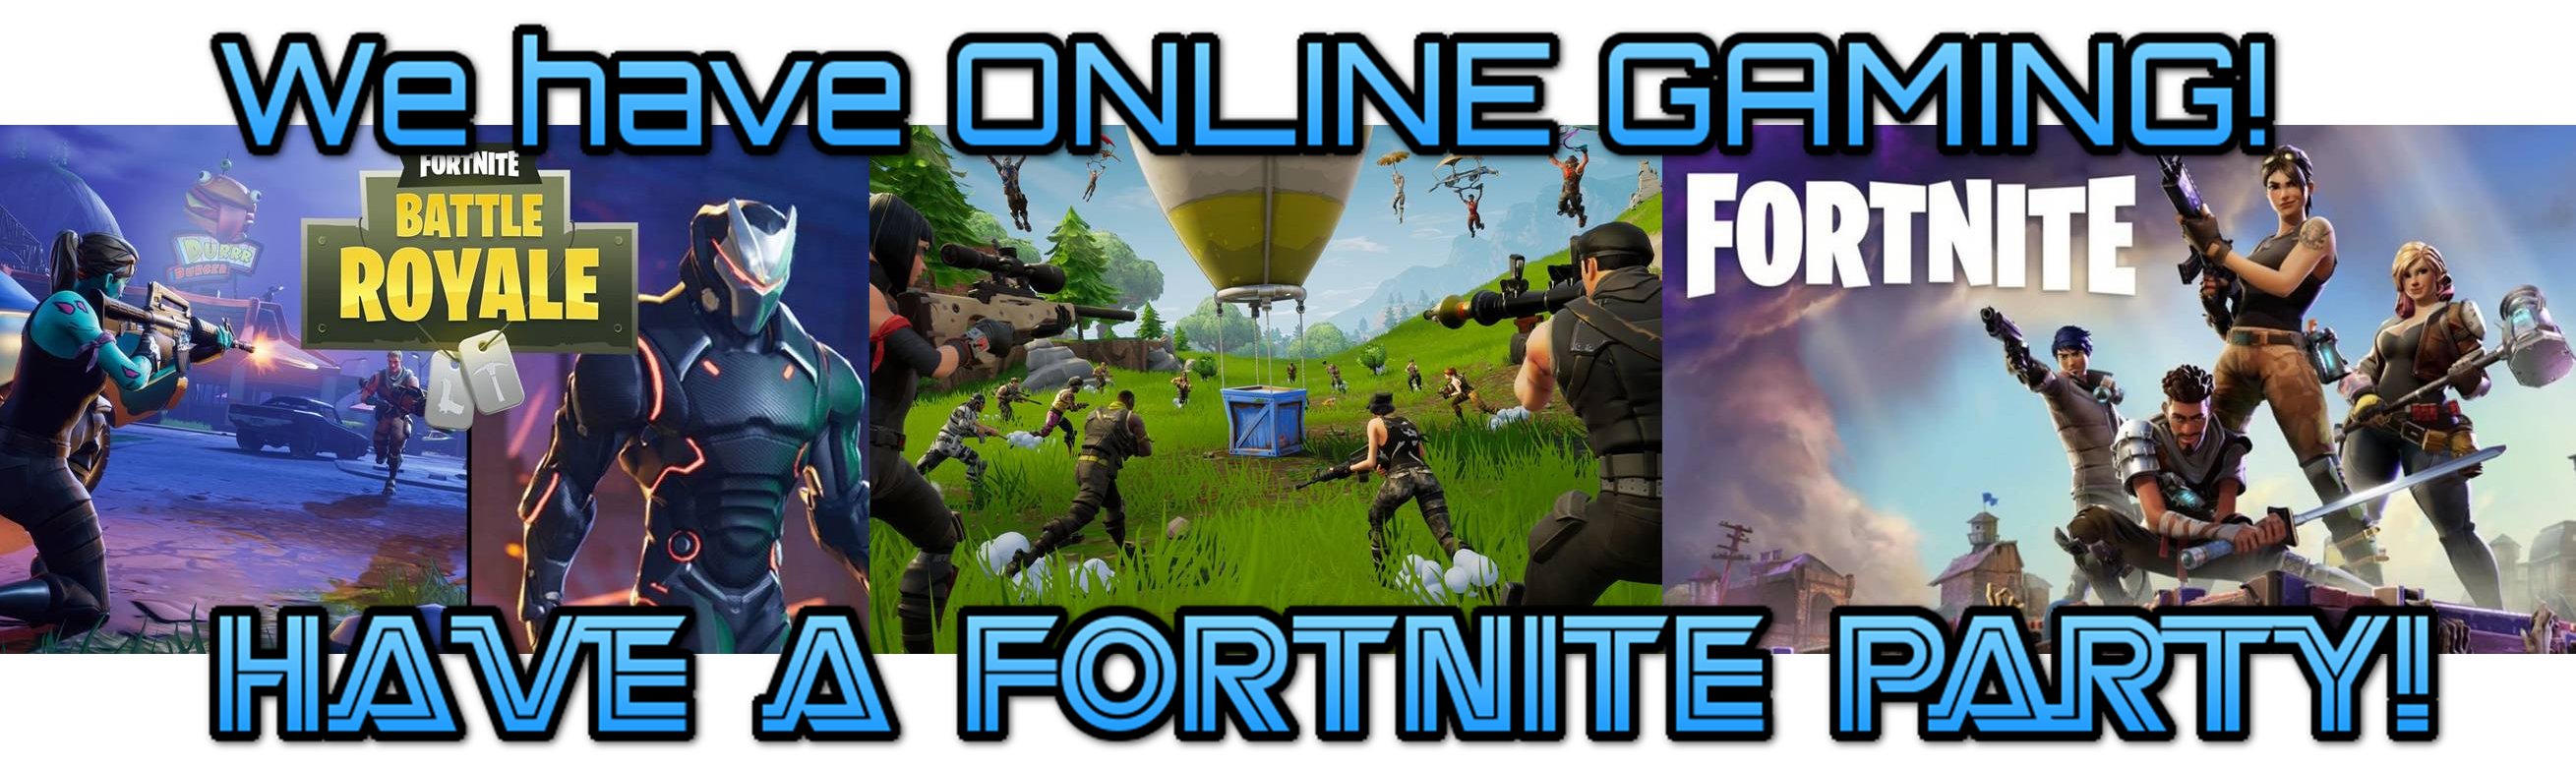 Fortnite party, Apex Legends online gaming party in Calgary, Alberta